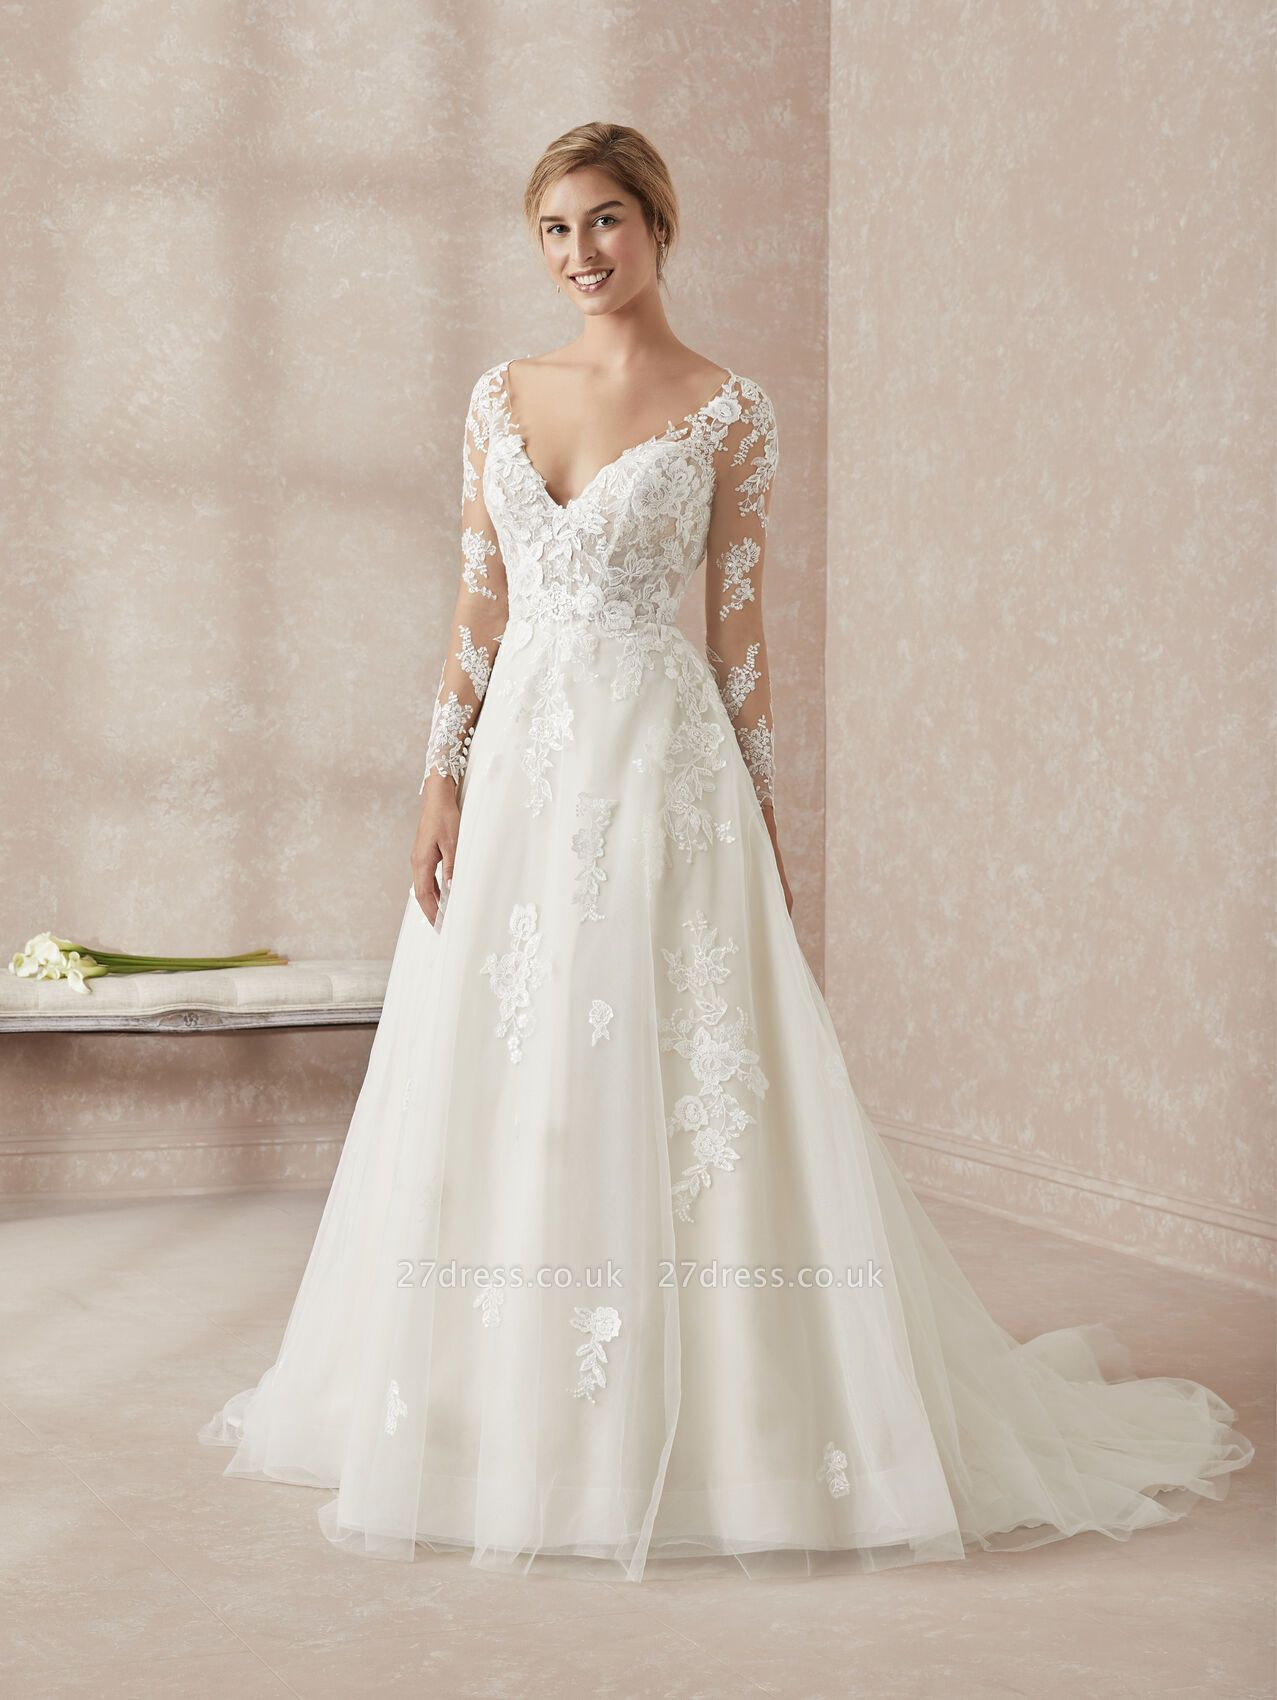 Elegant V-Neck Long Sleeve Wedding Dress A-line Lace Appliques Bridal Gowns